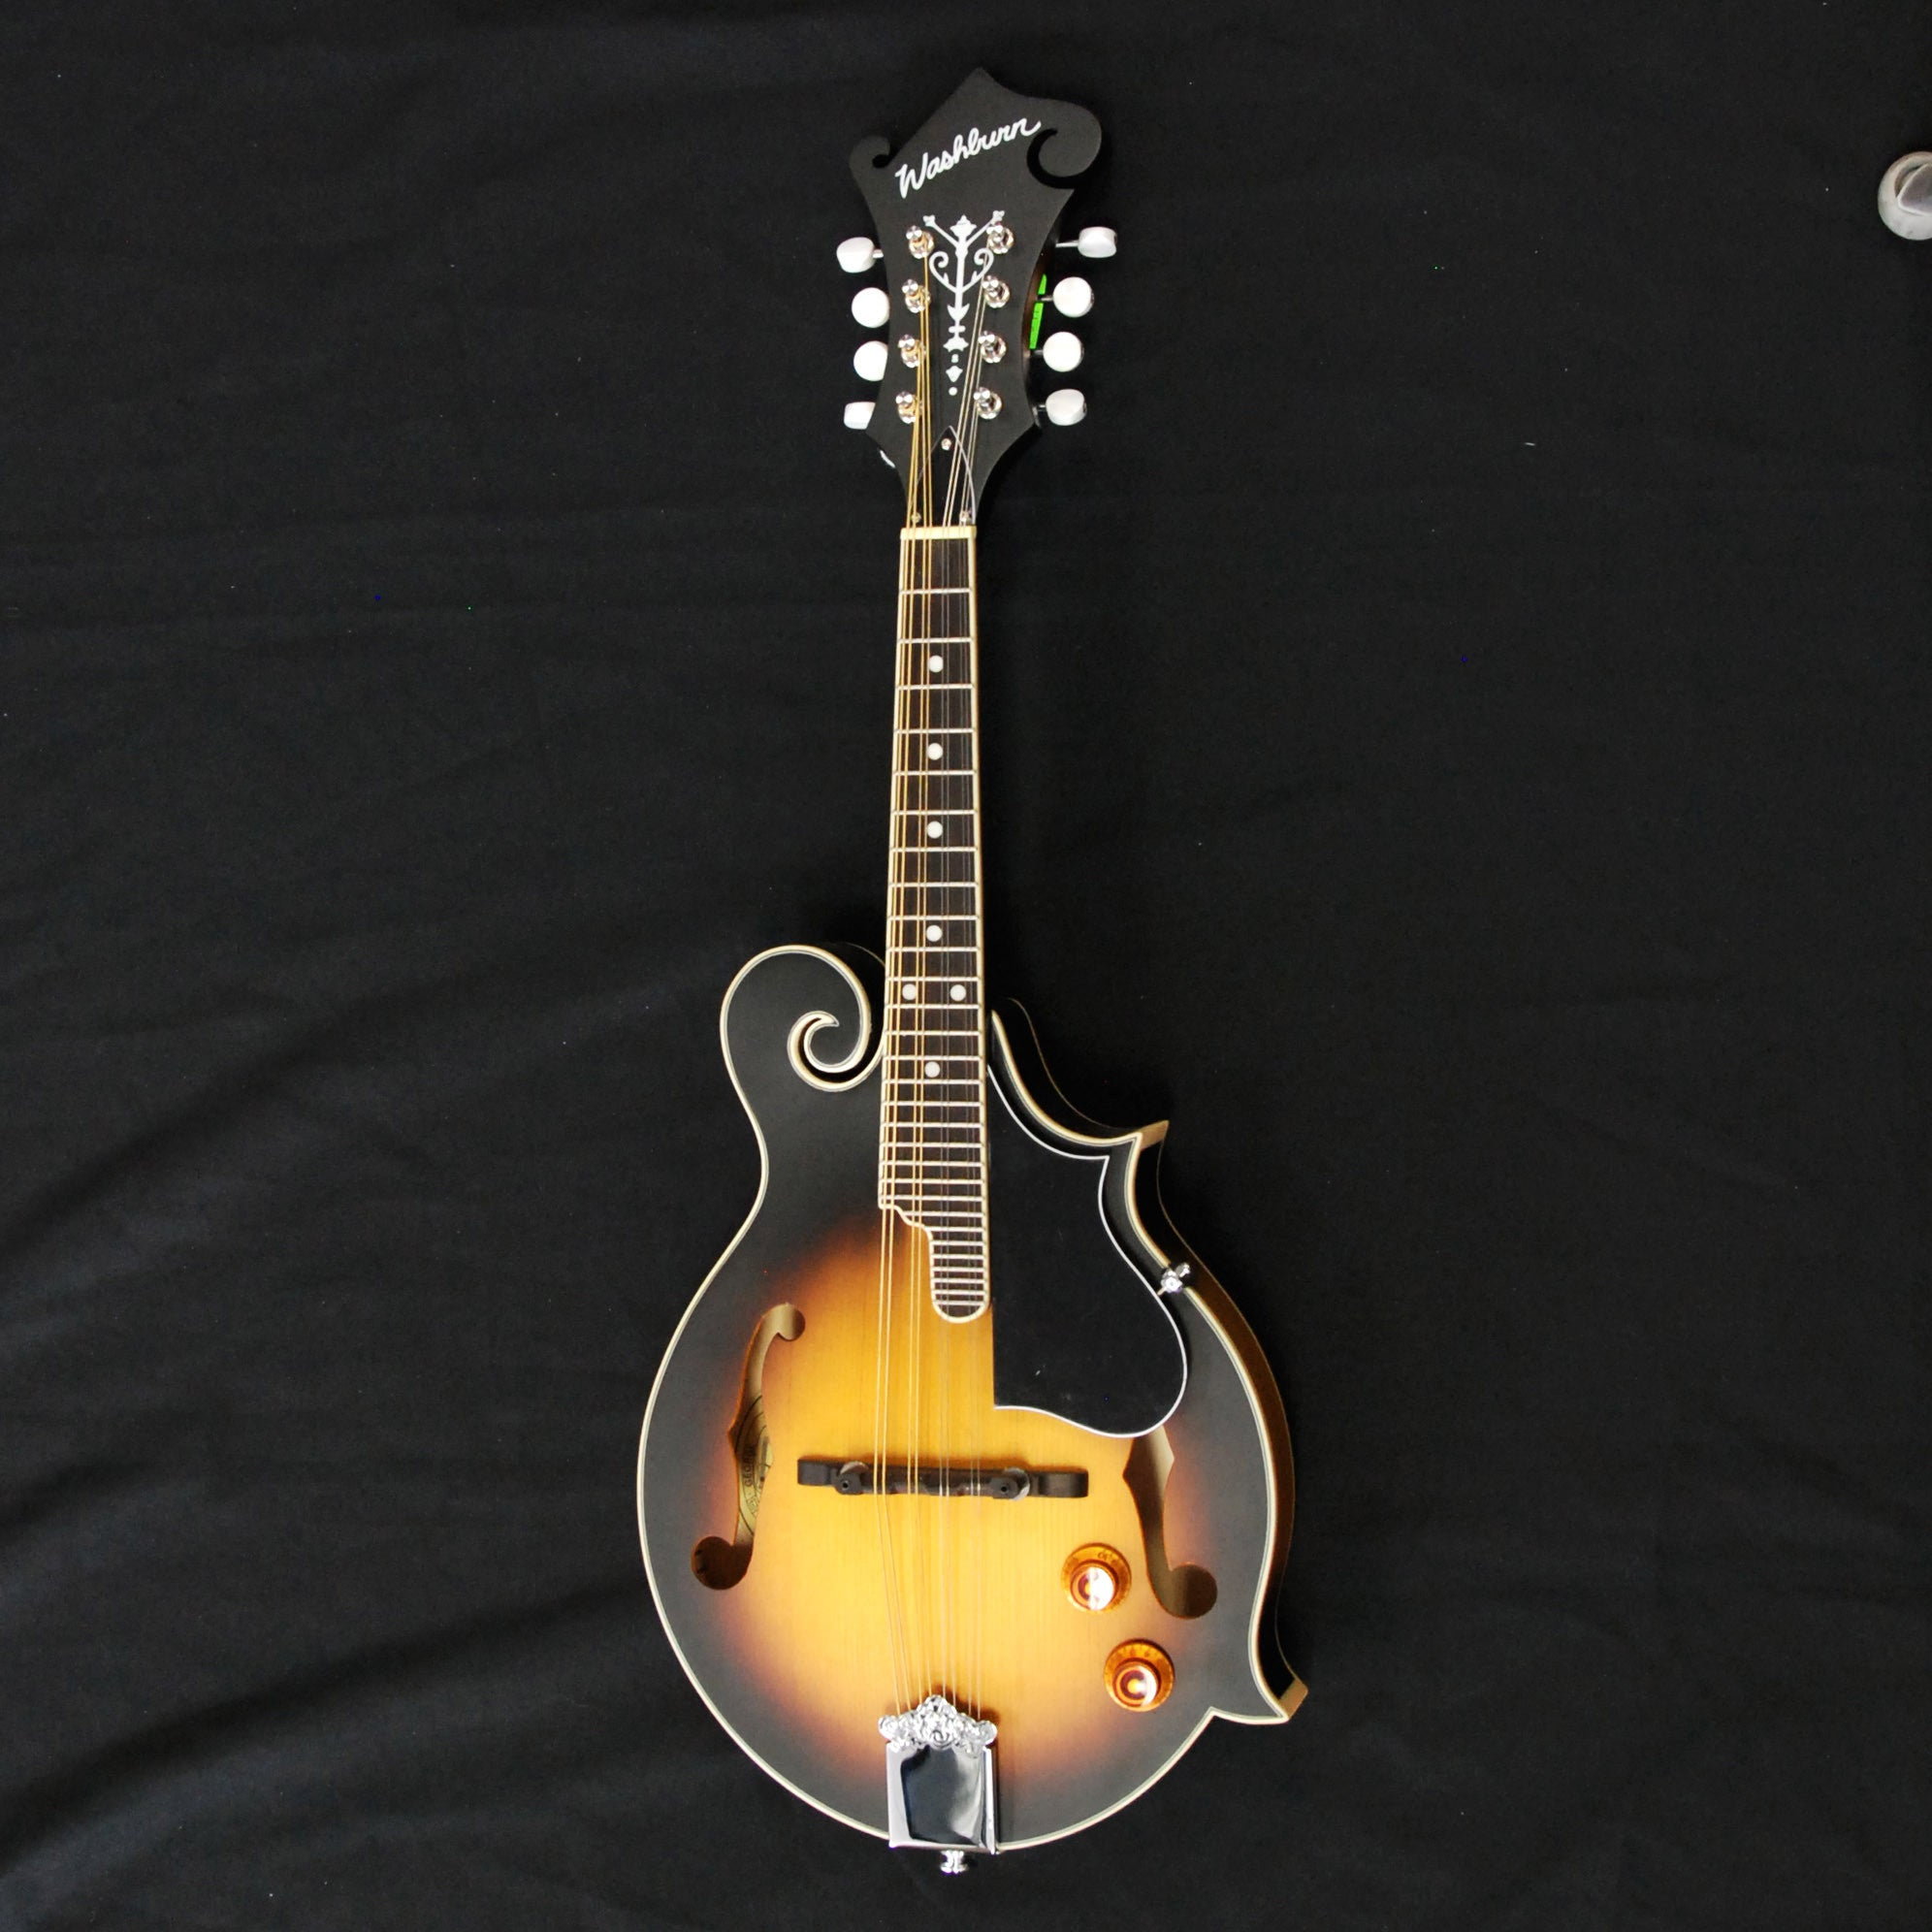 Shop online for Washburn M3EK Tobacco SB 8-String F-Style Mandolin Pack today.  Now available for purchase from Midlothian Music of Orland Park, Illinois, USA